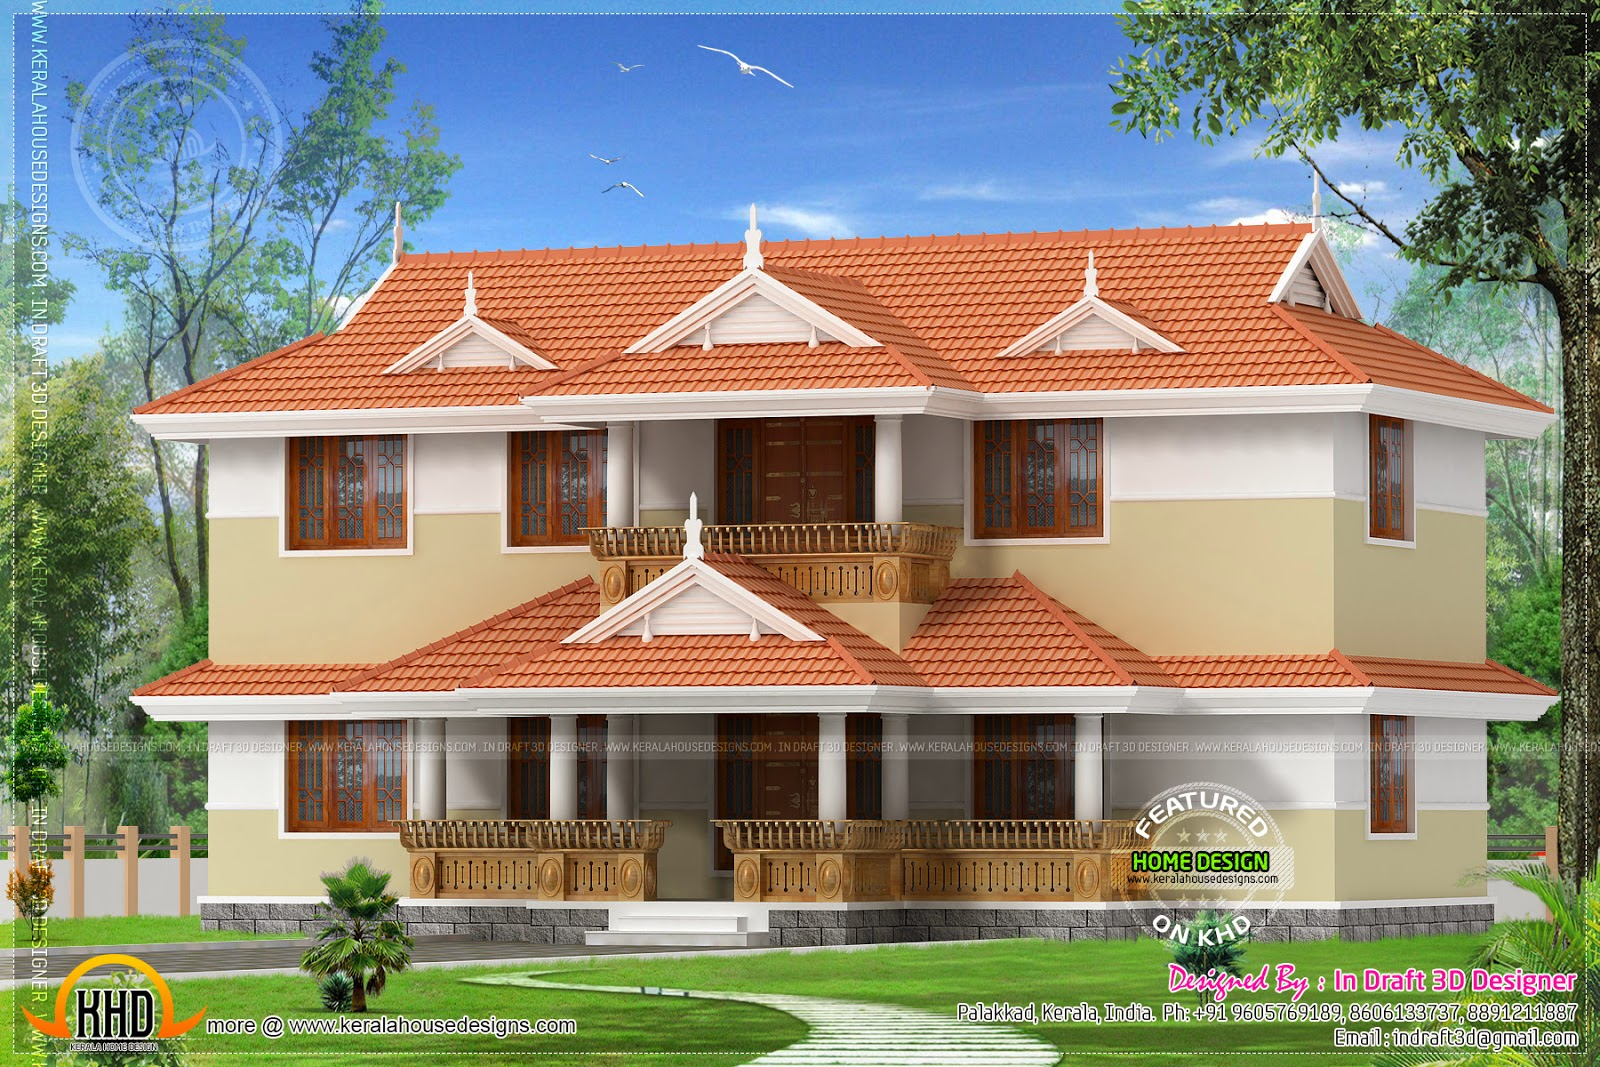 4 bed room traditional kerala home with courtyard kerala for Kerala traditional home plans with photos